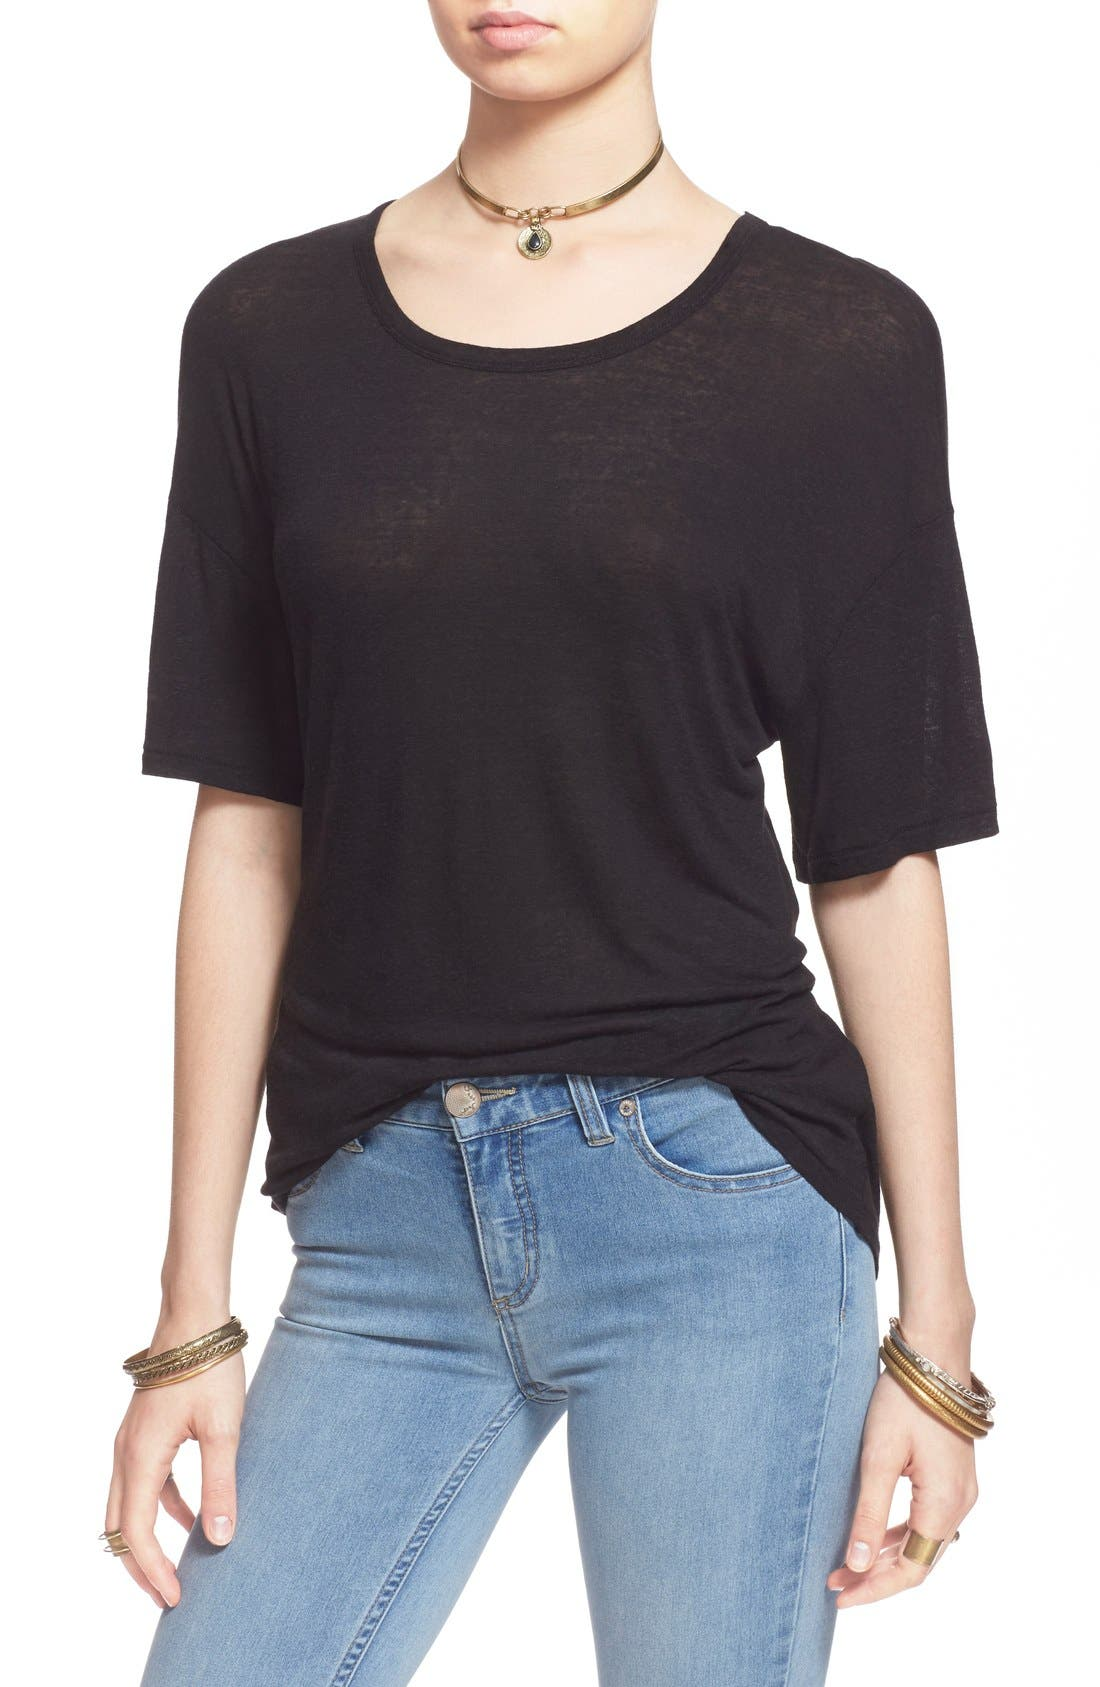 Alternate Image 1 Selected - Free People 'Gemma' Back Wrap Tee